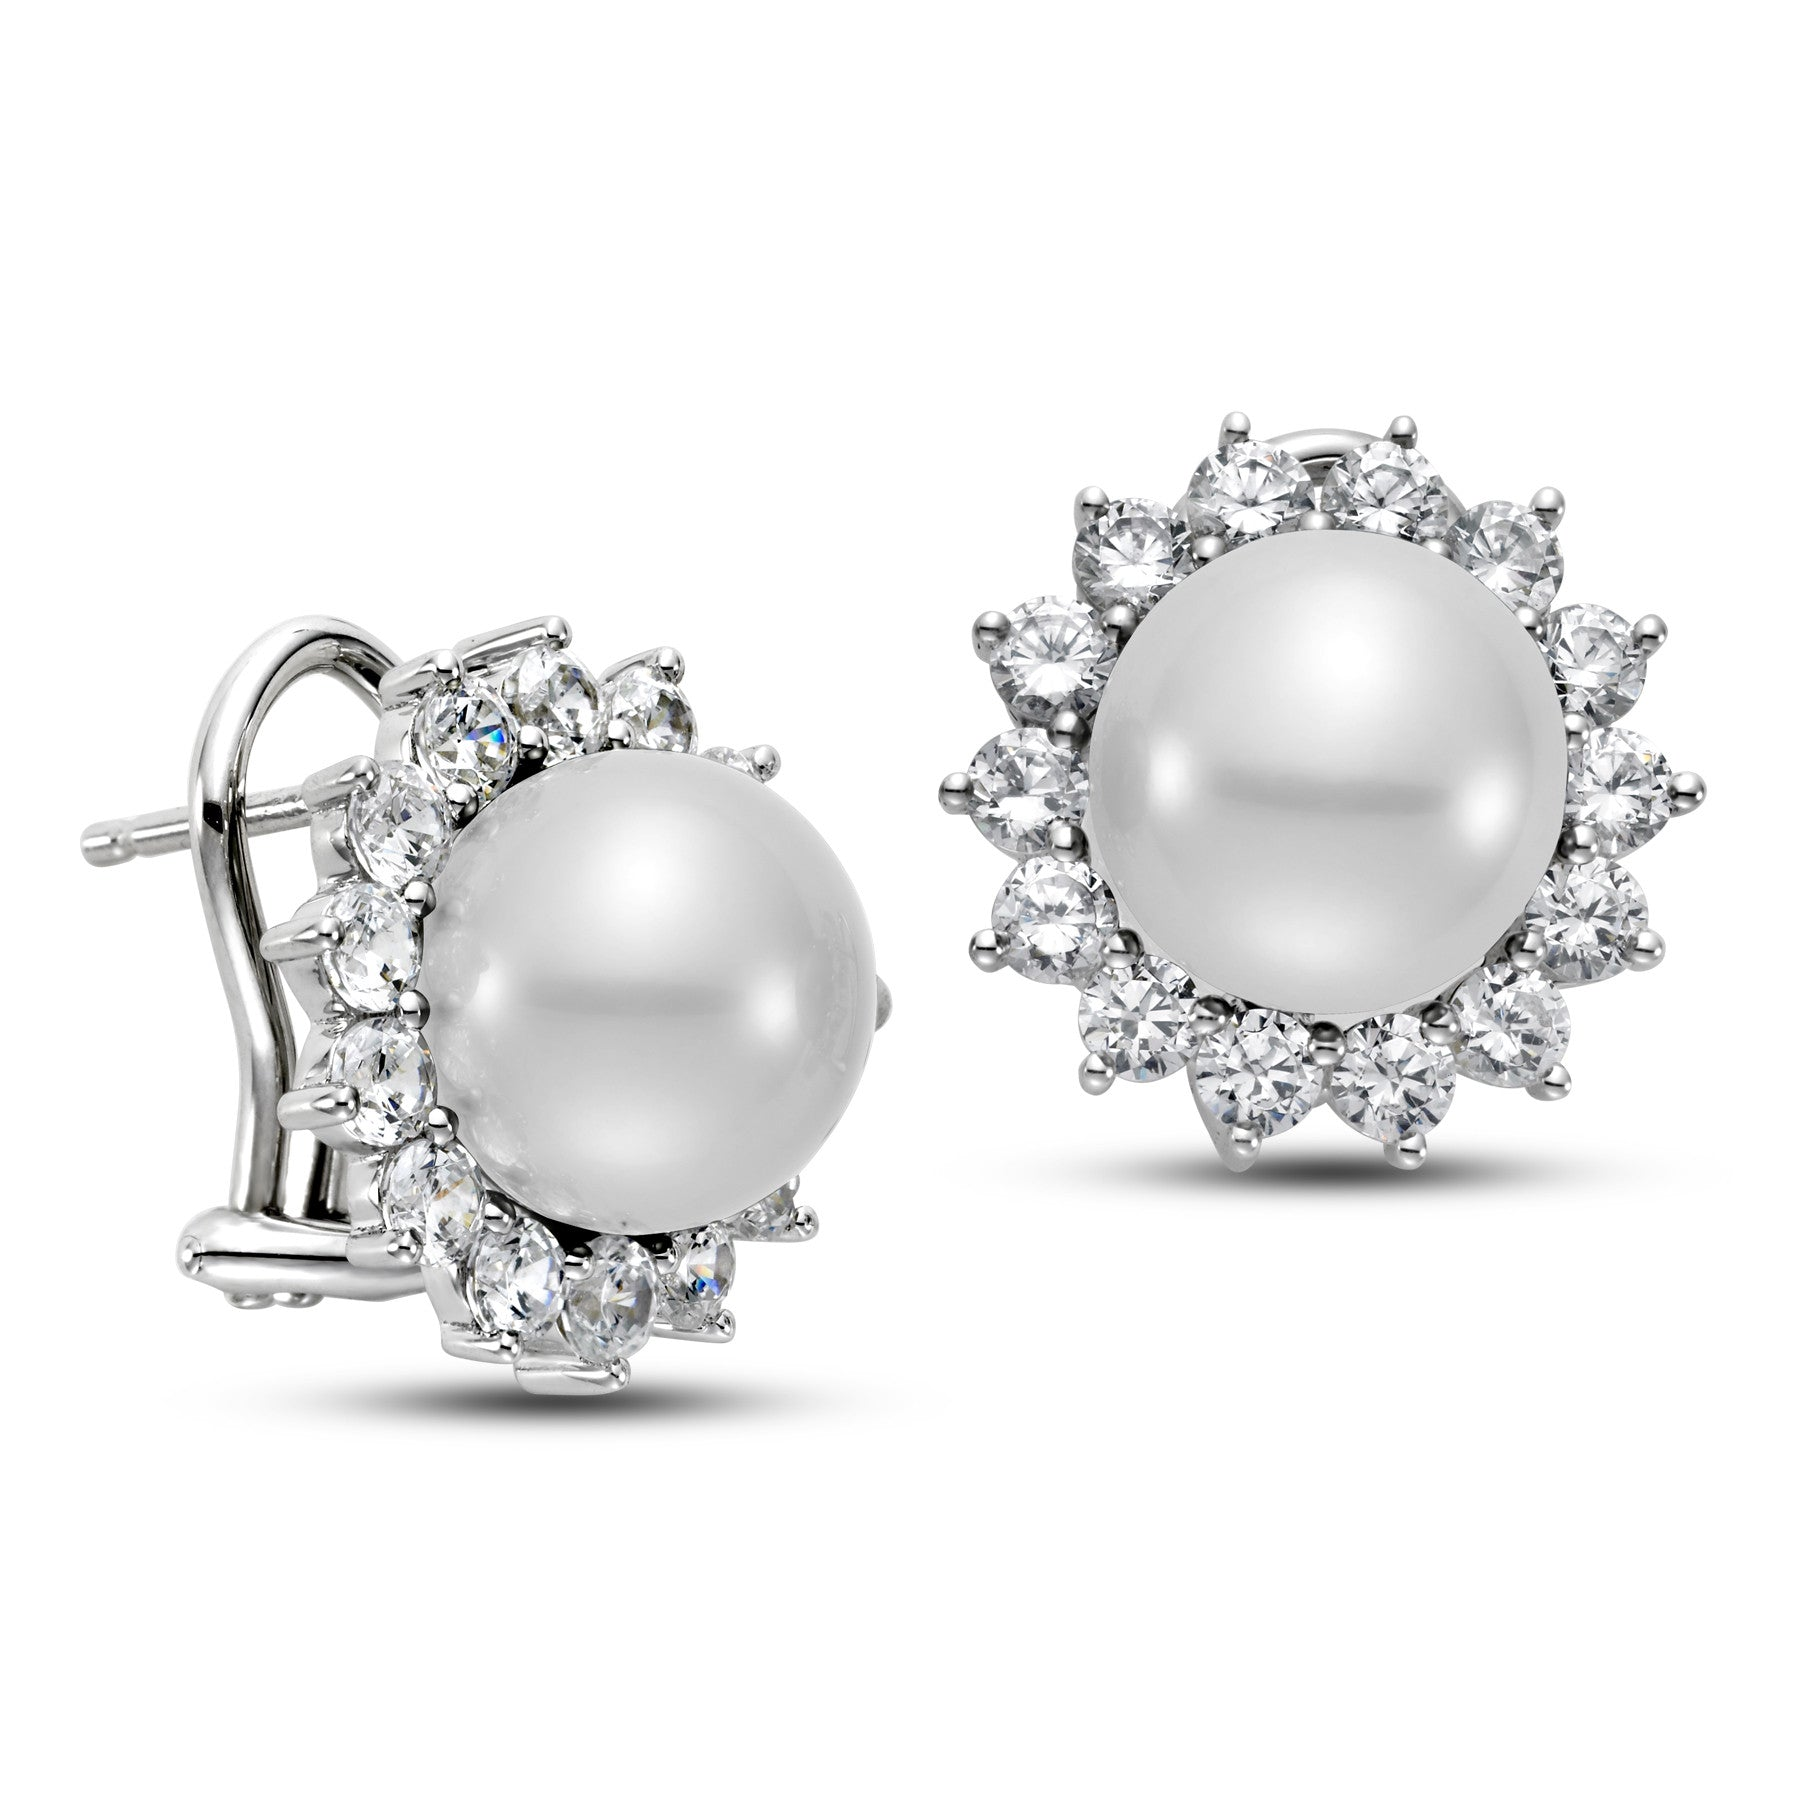 10 5 11 5mm White South Sea Pearl Earrings with 2 3 CTTW